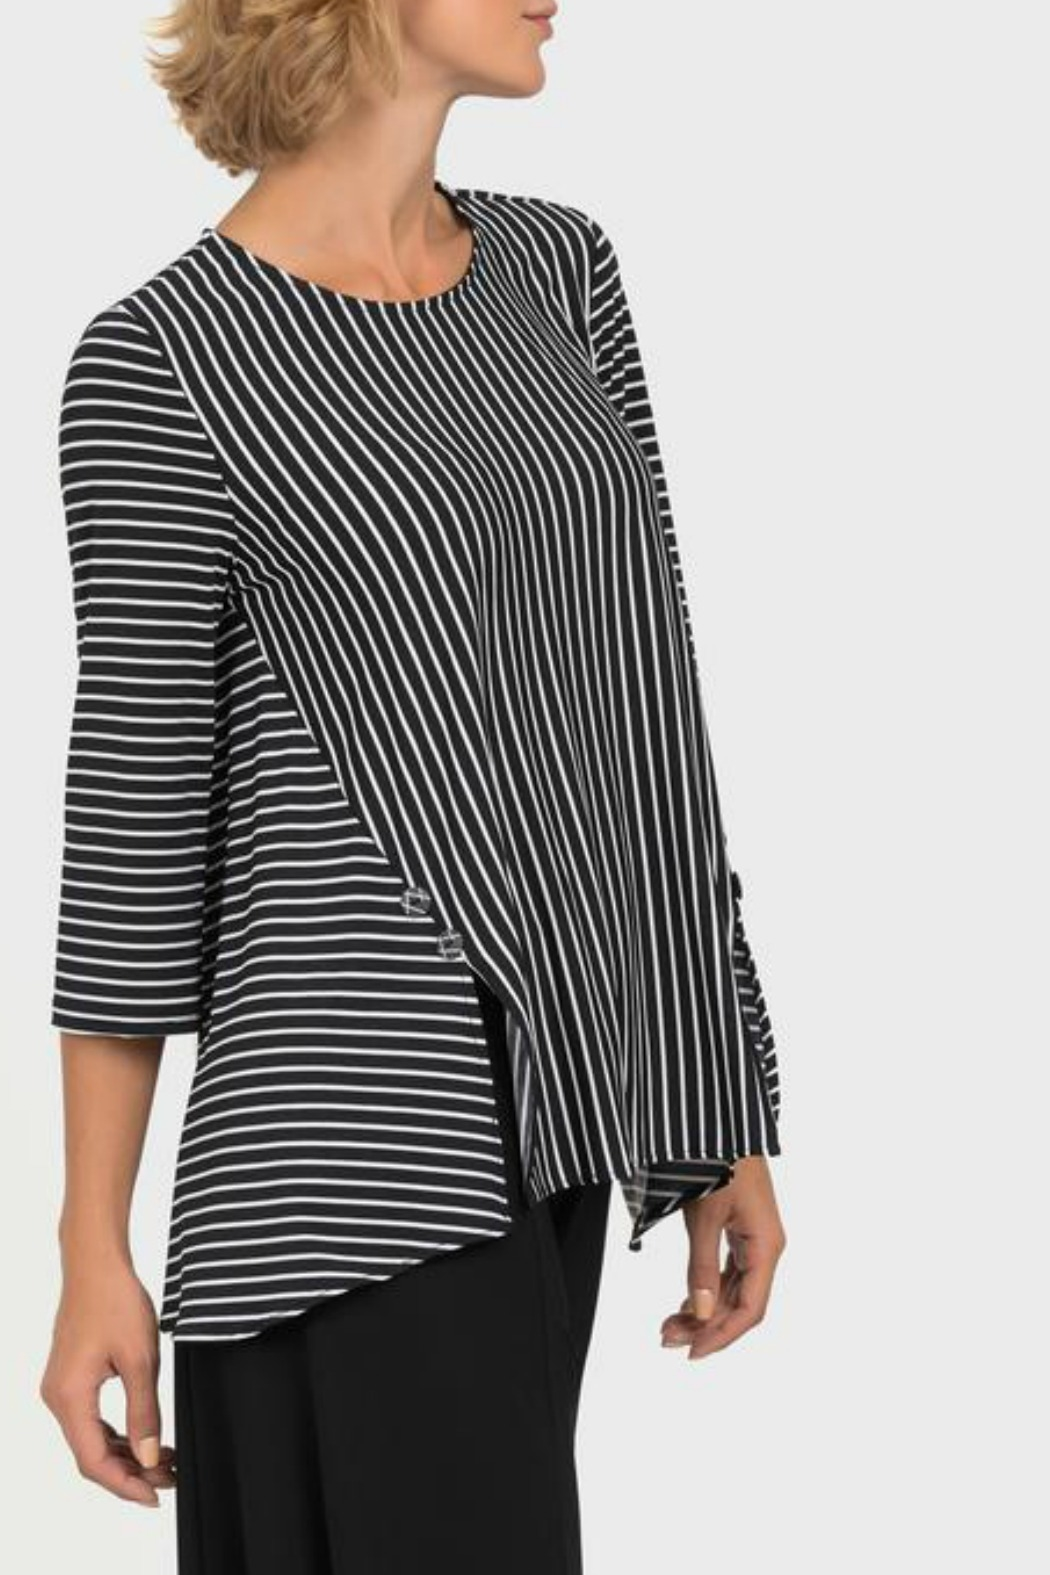 Joseph Ribkoff USA Inc. Black + White Stripe Top - Front Full Image